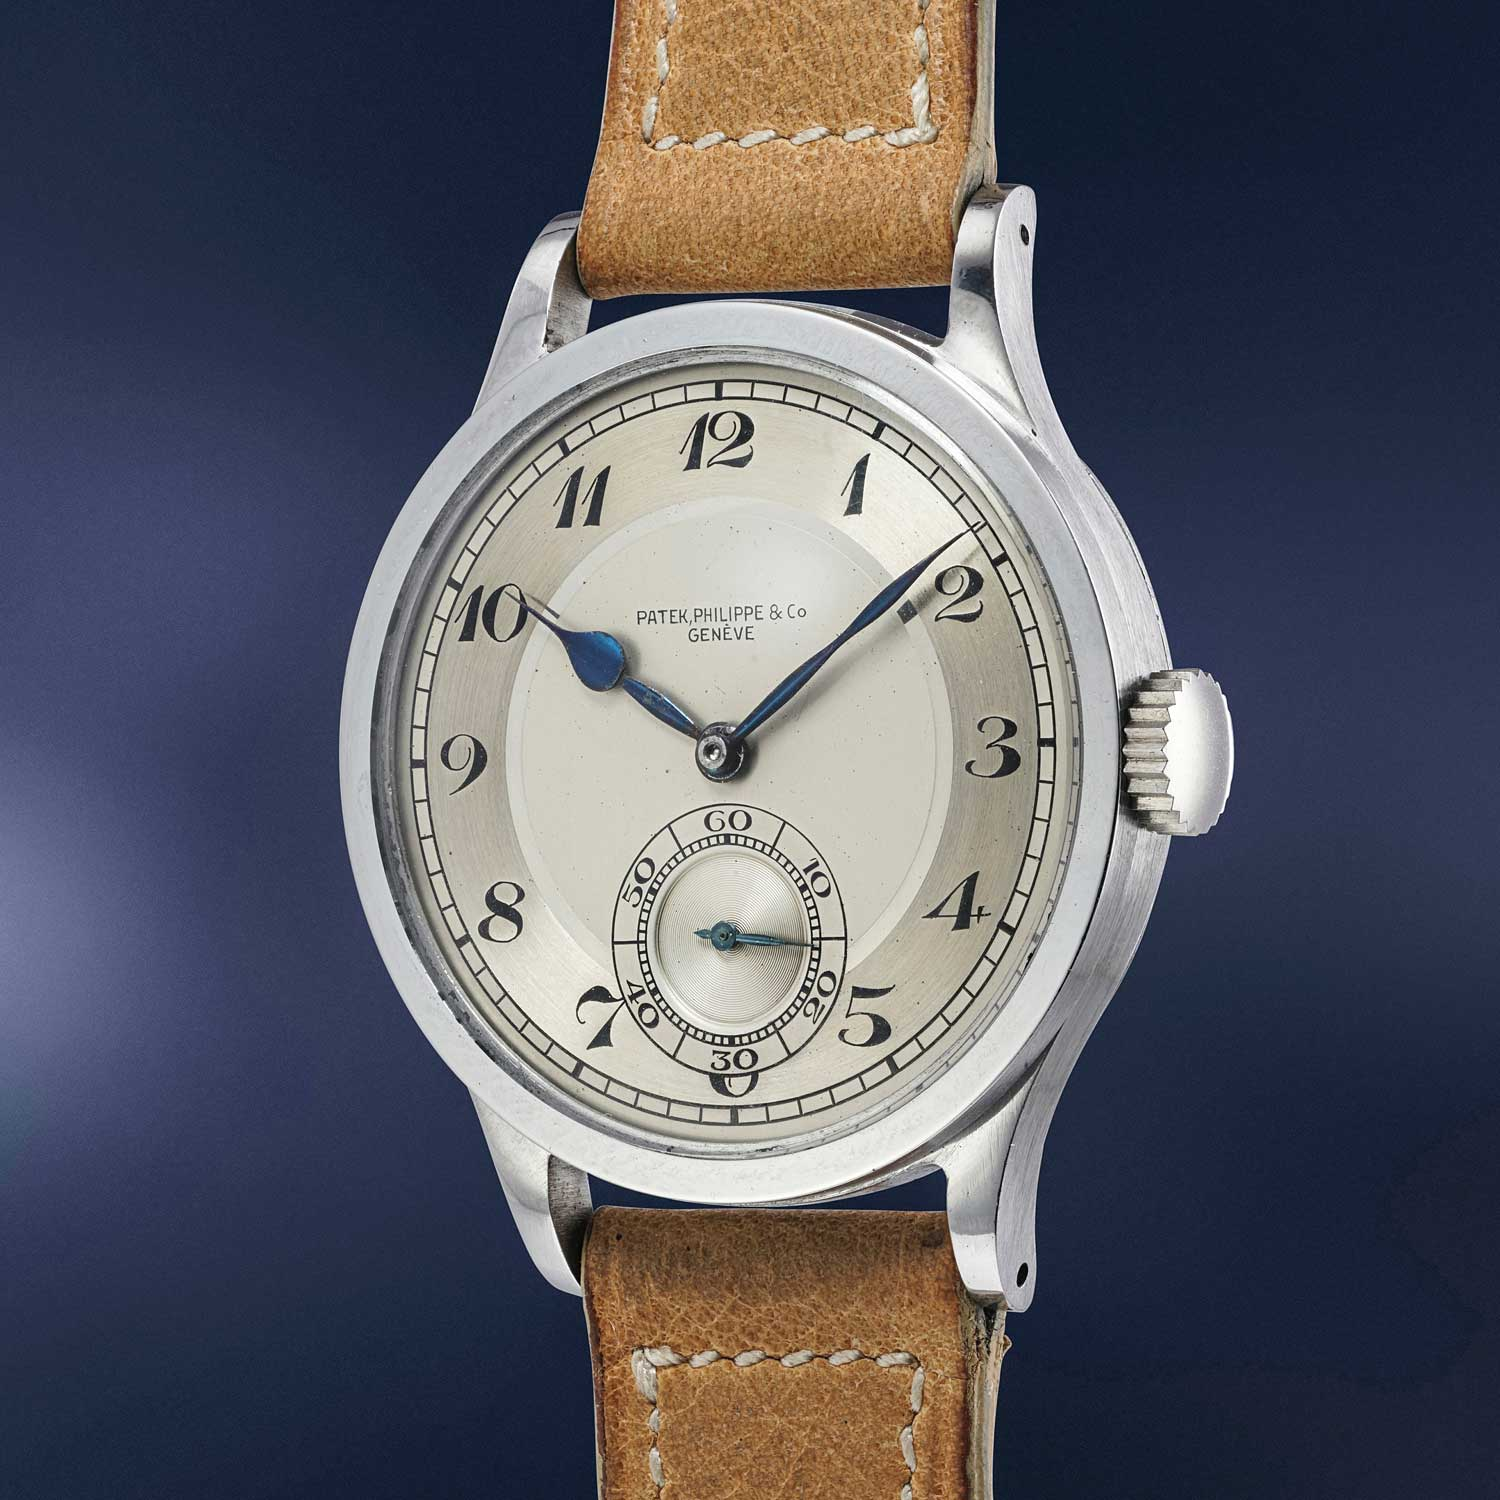 The Patek Philippe reference 570 in steel with Breguet numerals was recently sold by Phillips for CHF 3.3 million